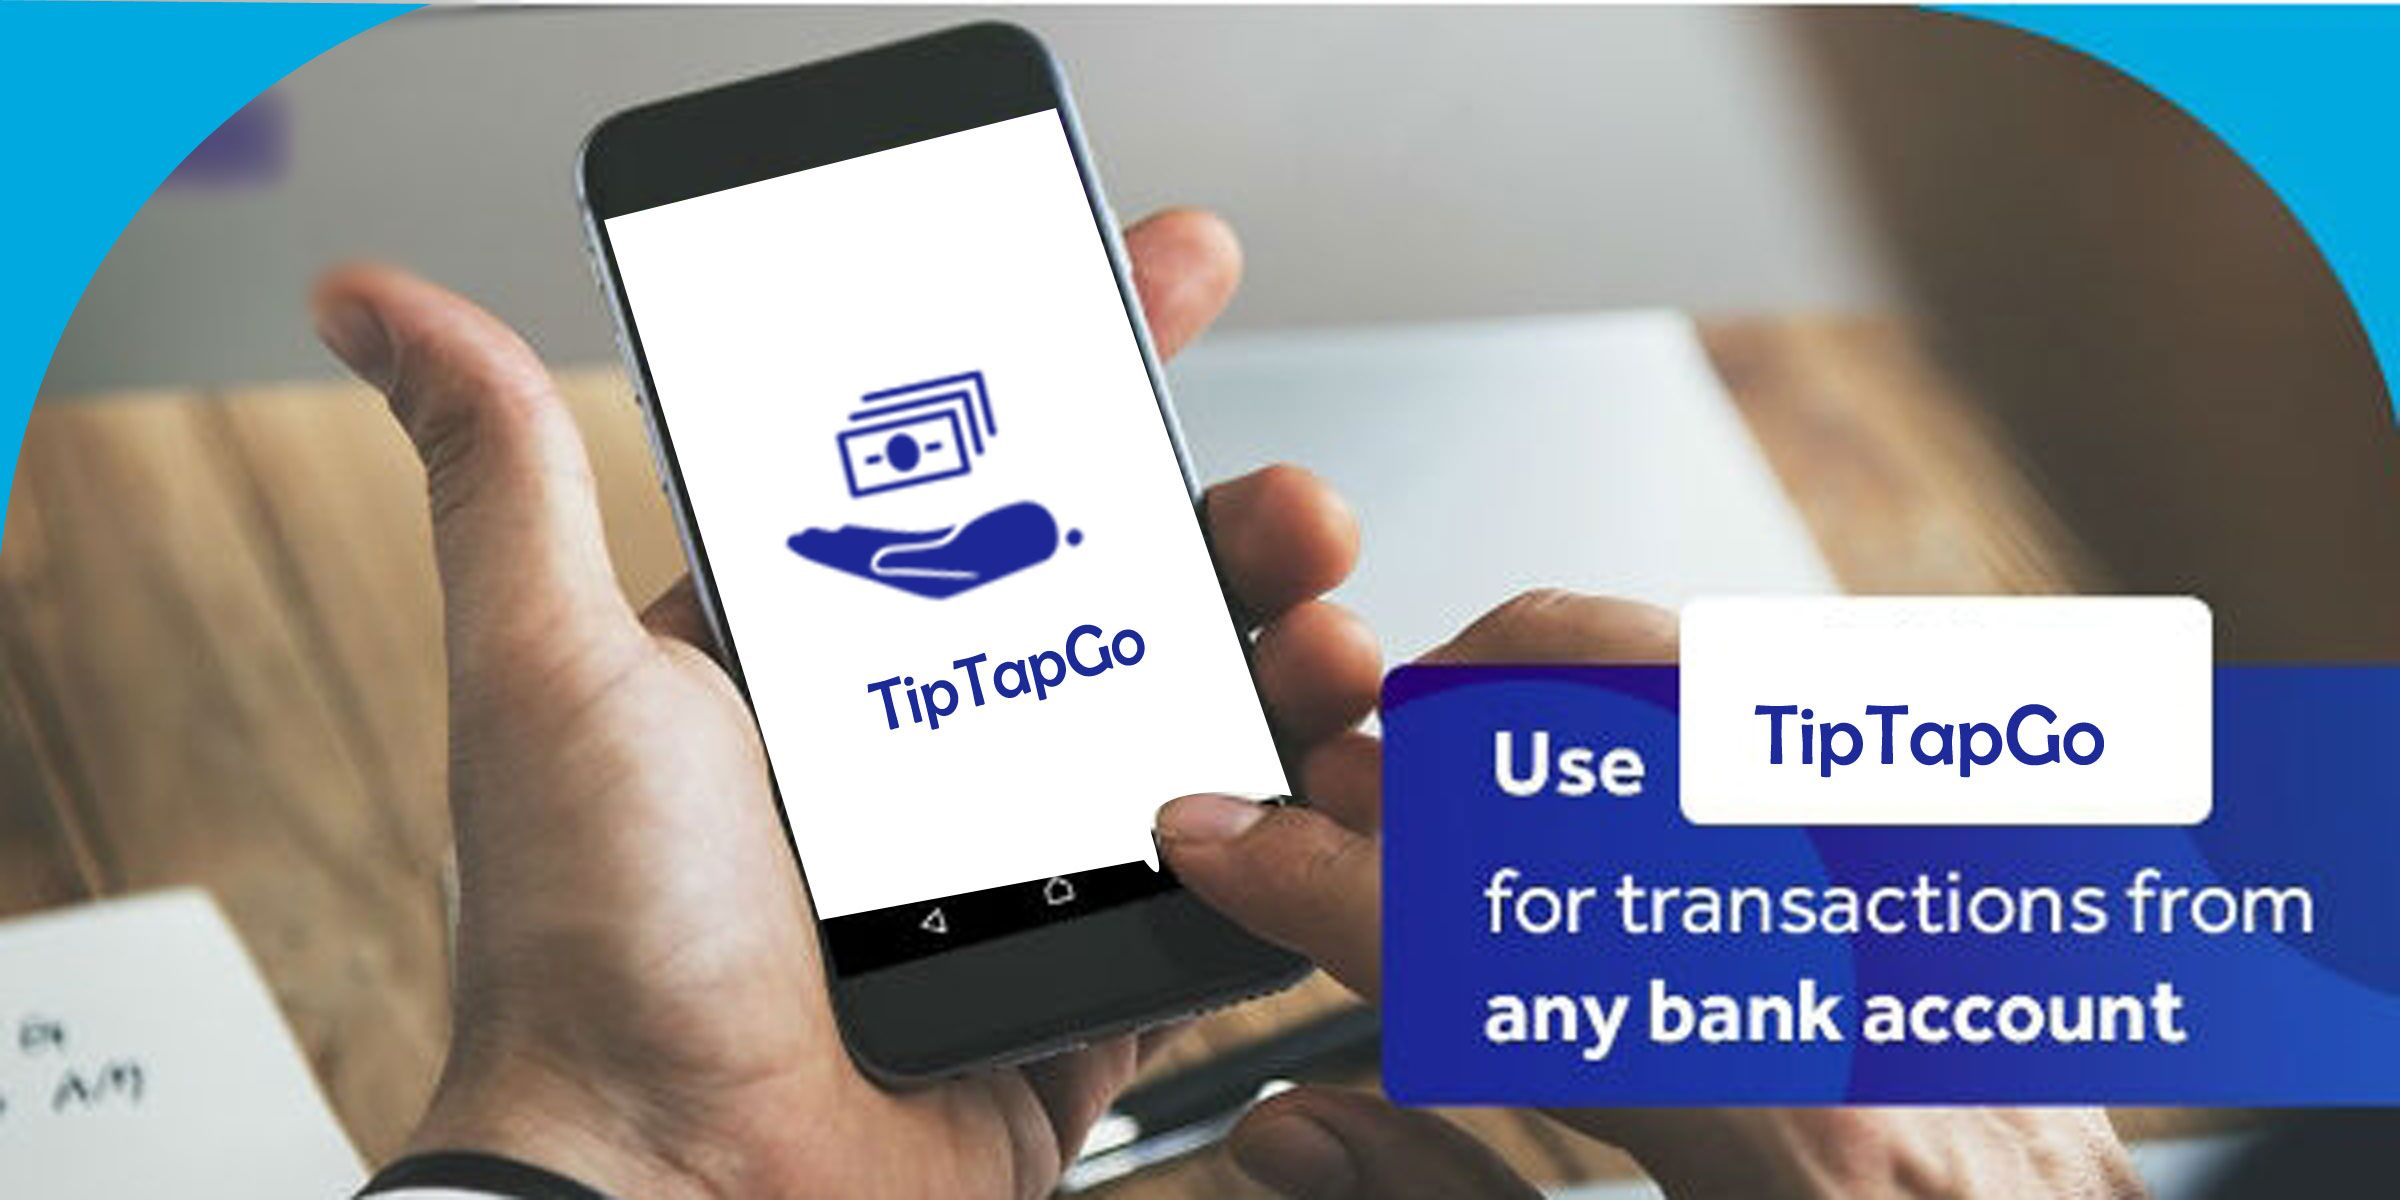 Tiptapgo is high_quality payment_app which formulates